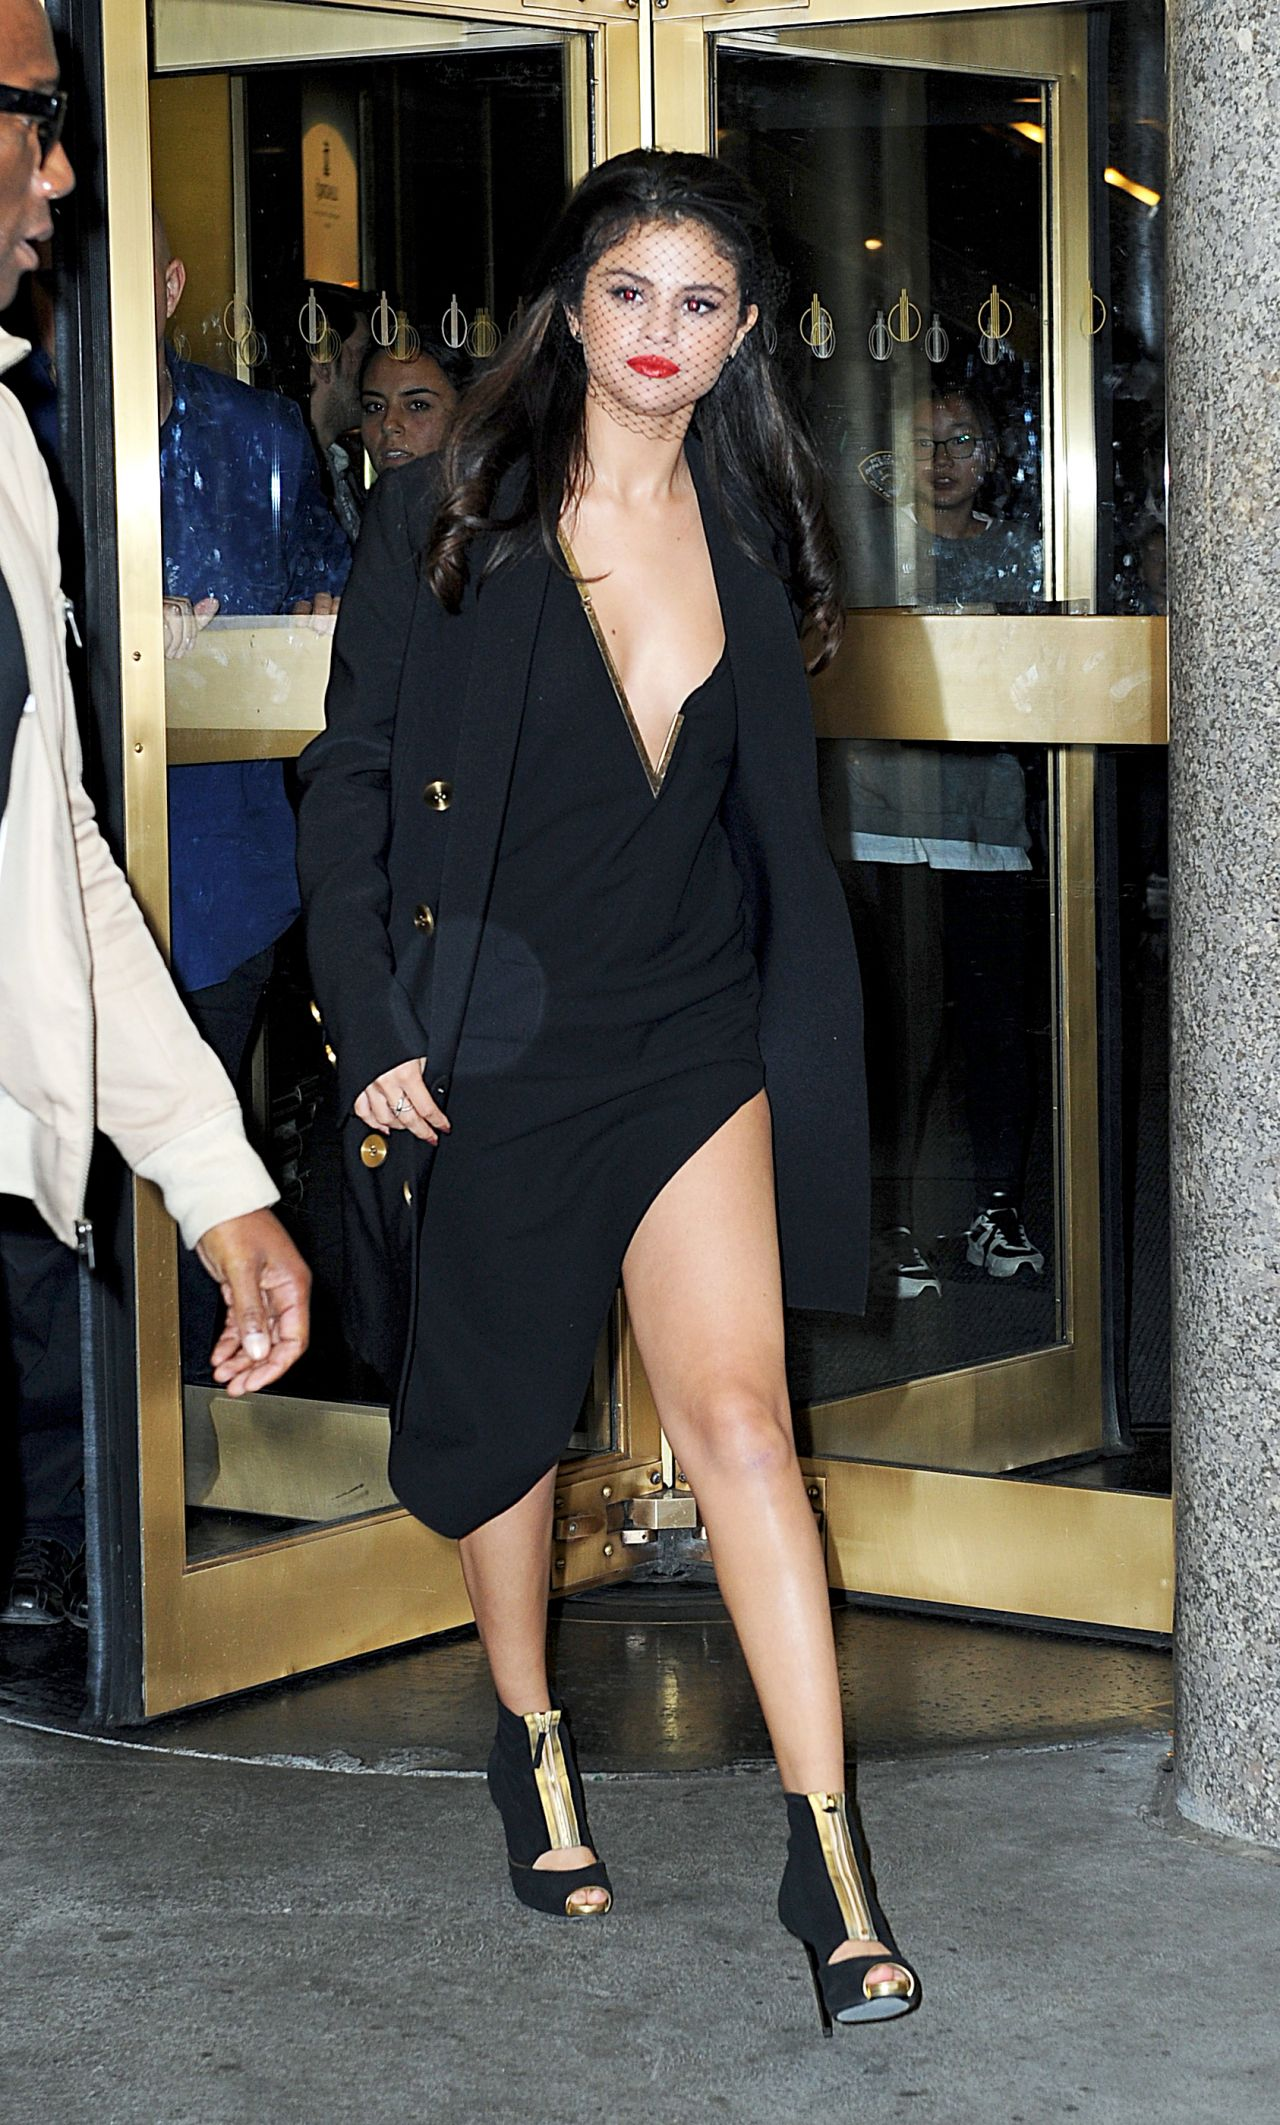 selena-gomez-leaving-the-tonight-show-studios-in-nyc-october-2015_1